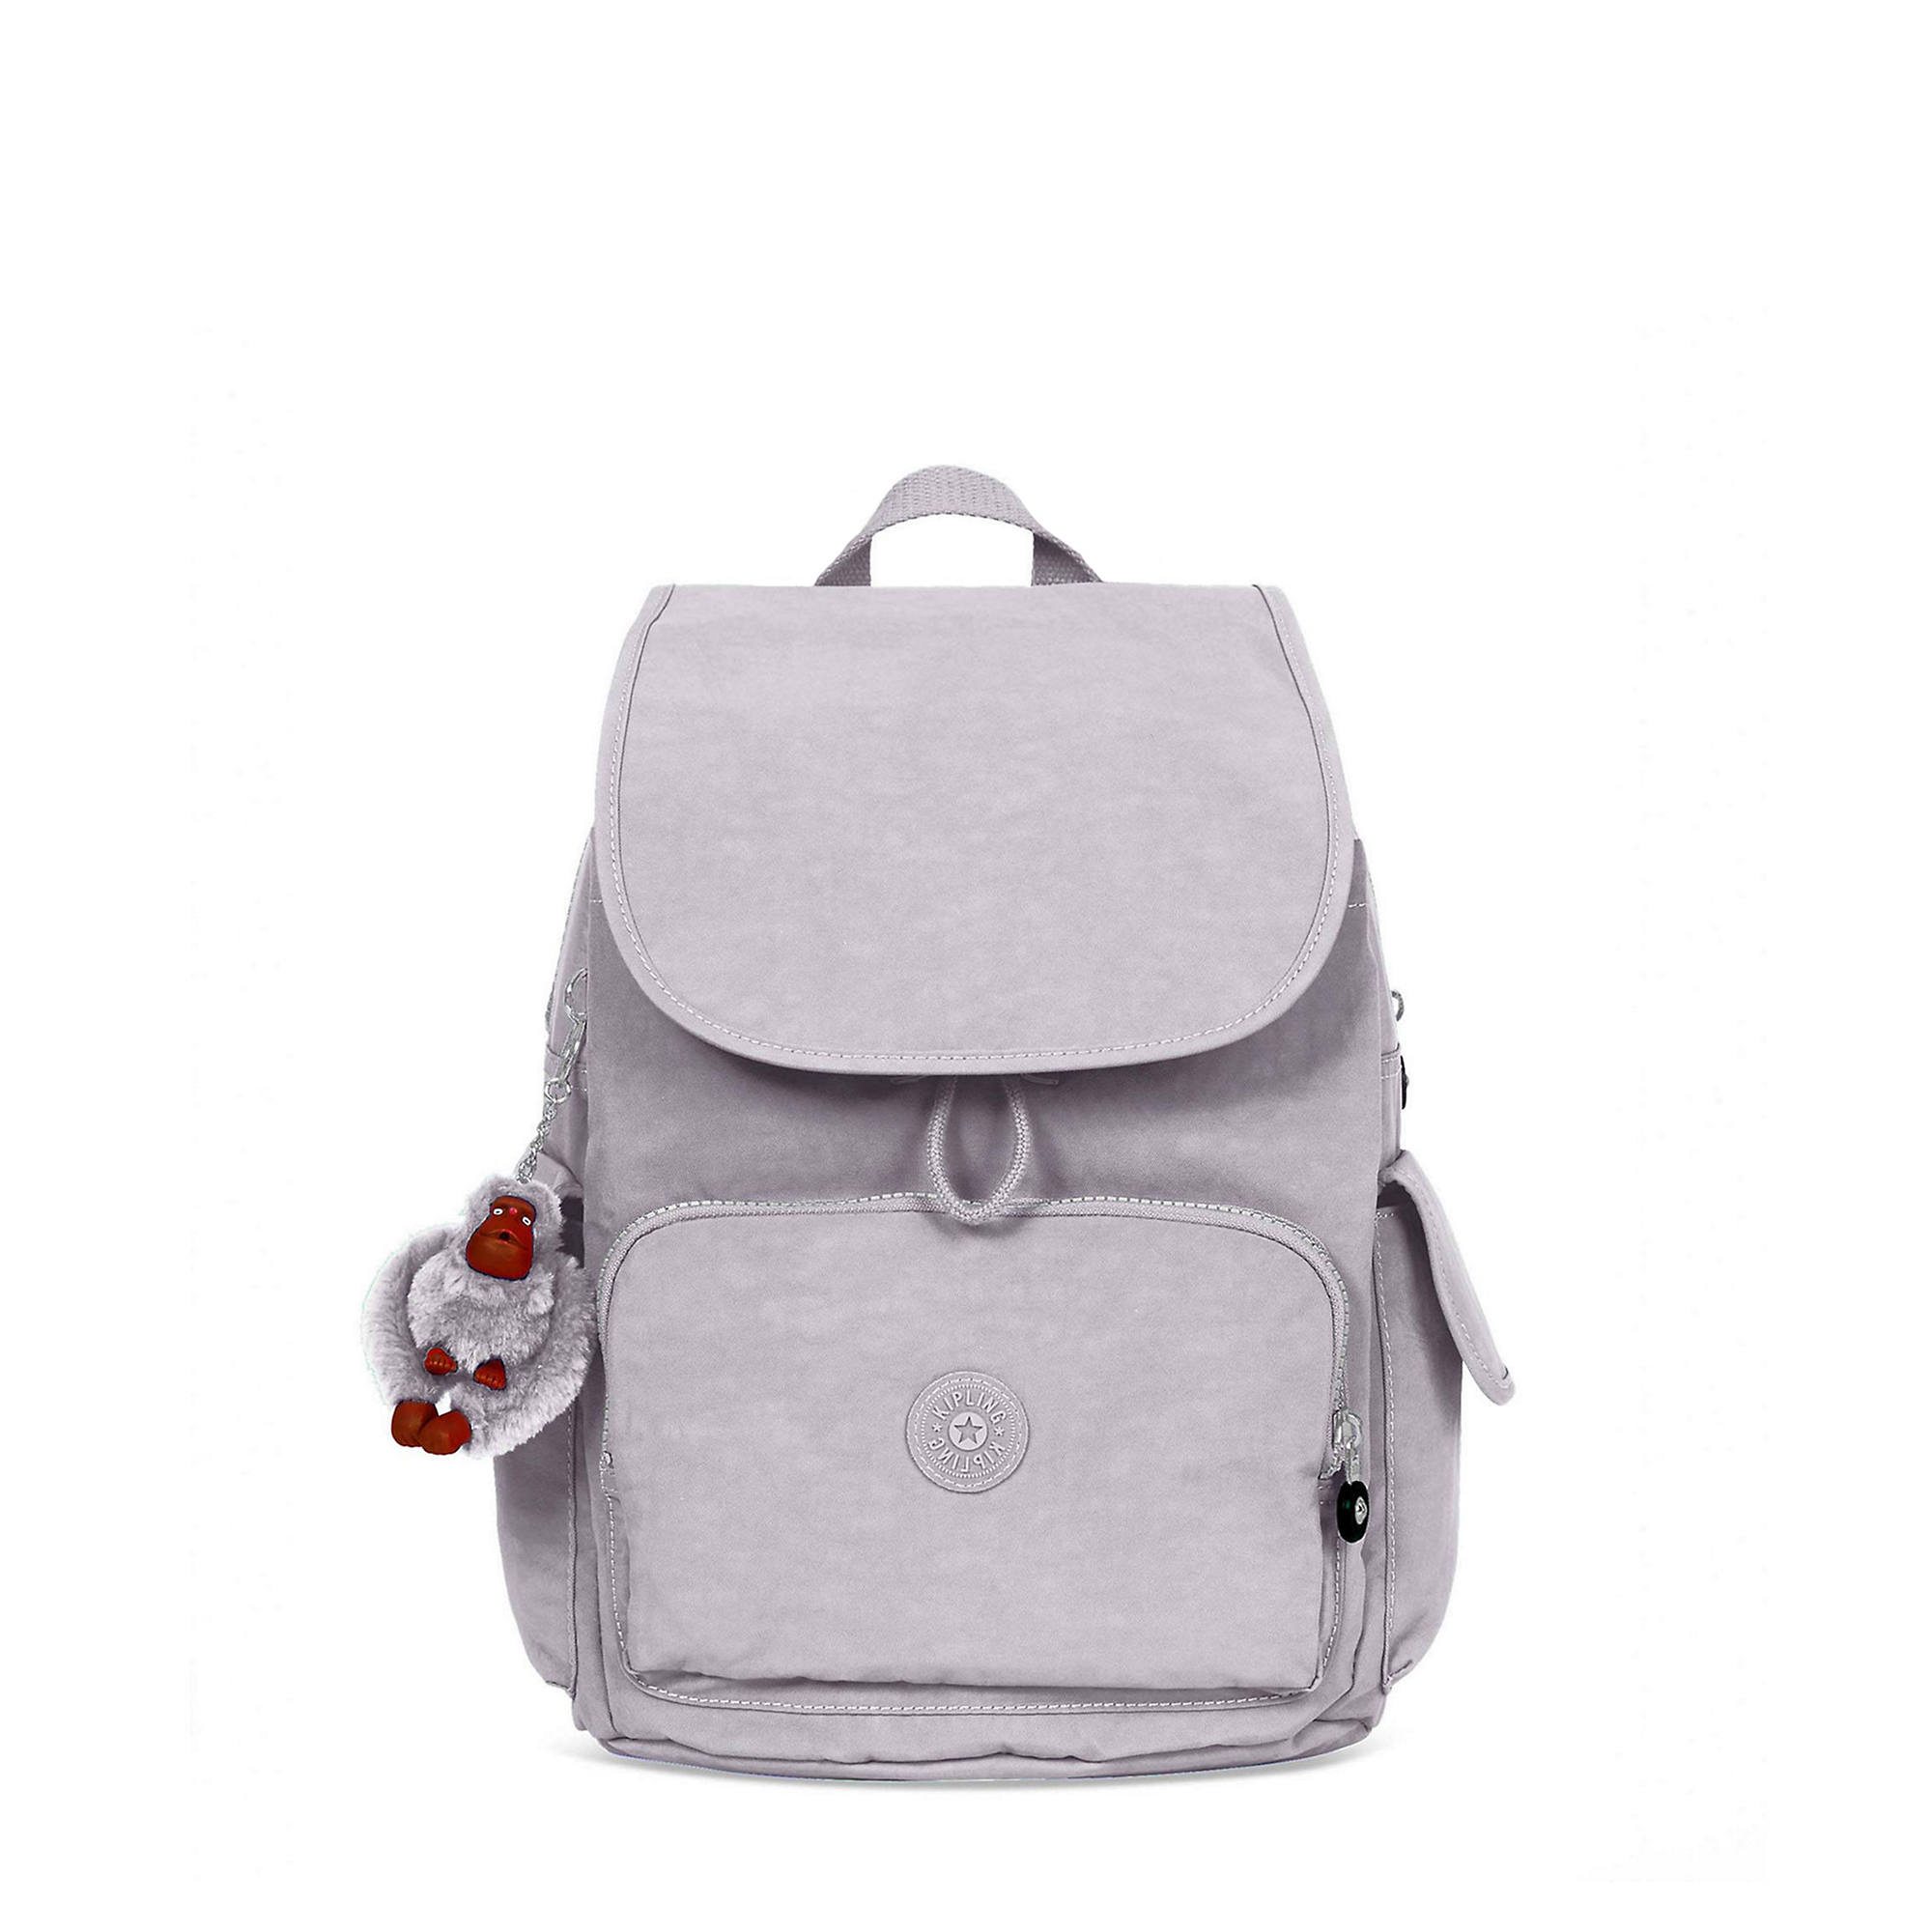 22f68022c747 City Pack Backpack